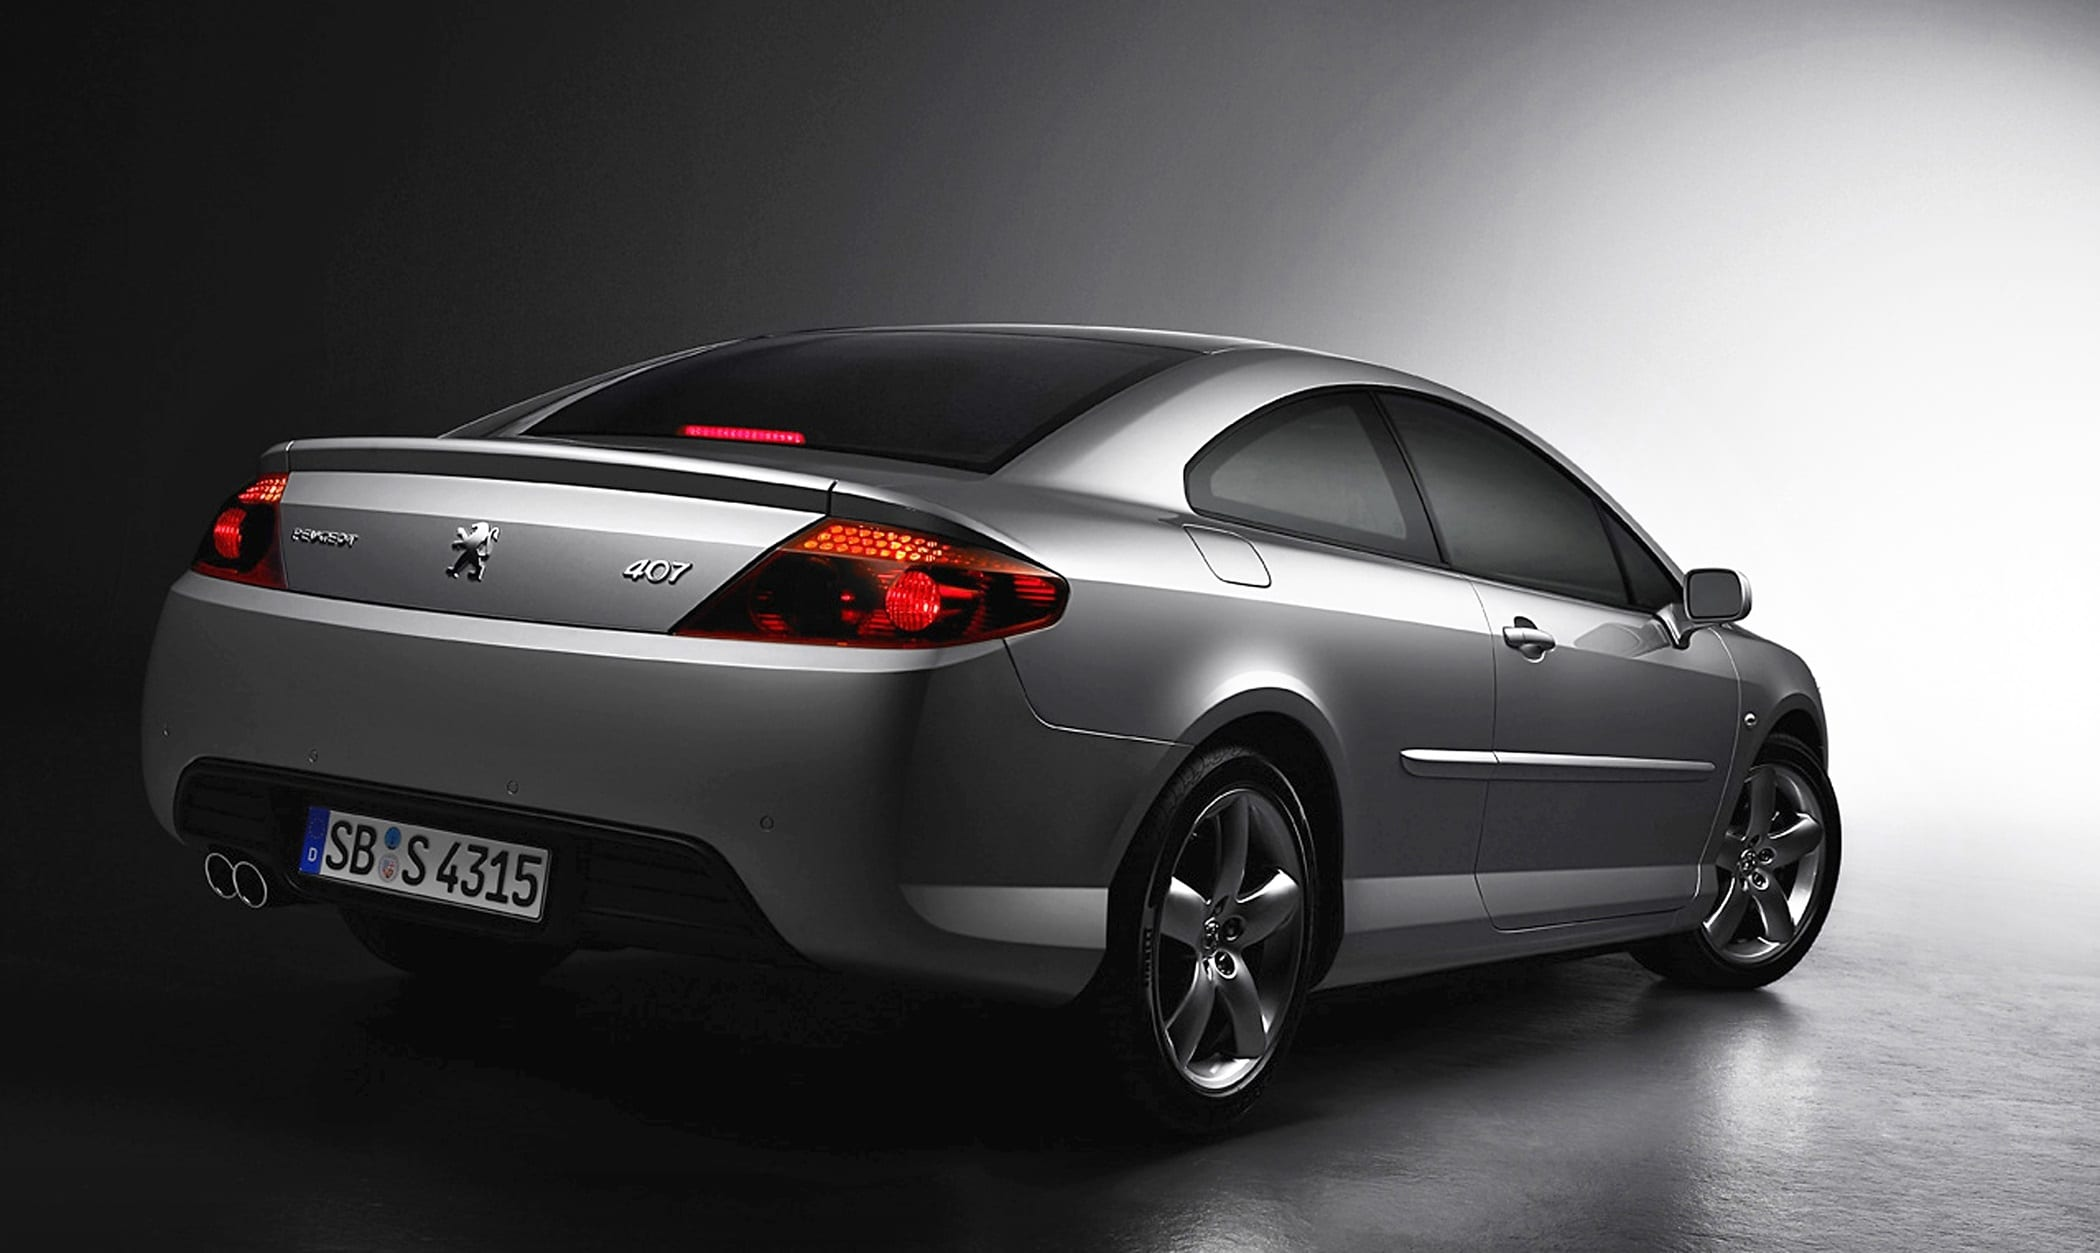 peugeot 407 coupe, peugeot 407, 407 coupe, peugeot, french, psa, psa group, motoring, automotive, classic car, retro car, car sales, cheap car, diesel, petrol, motoring, automotive, car, cars